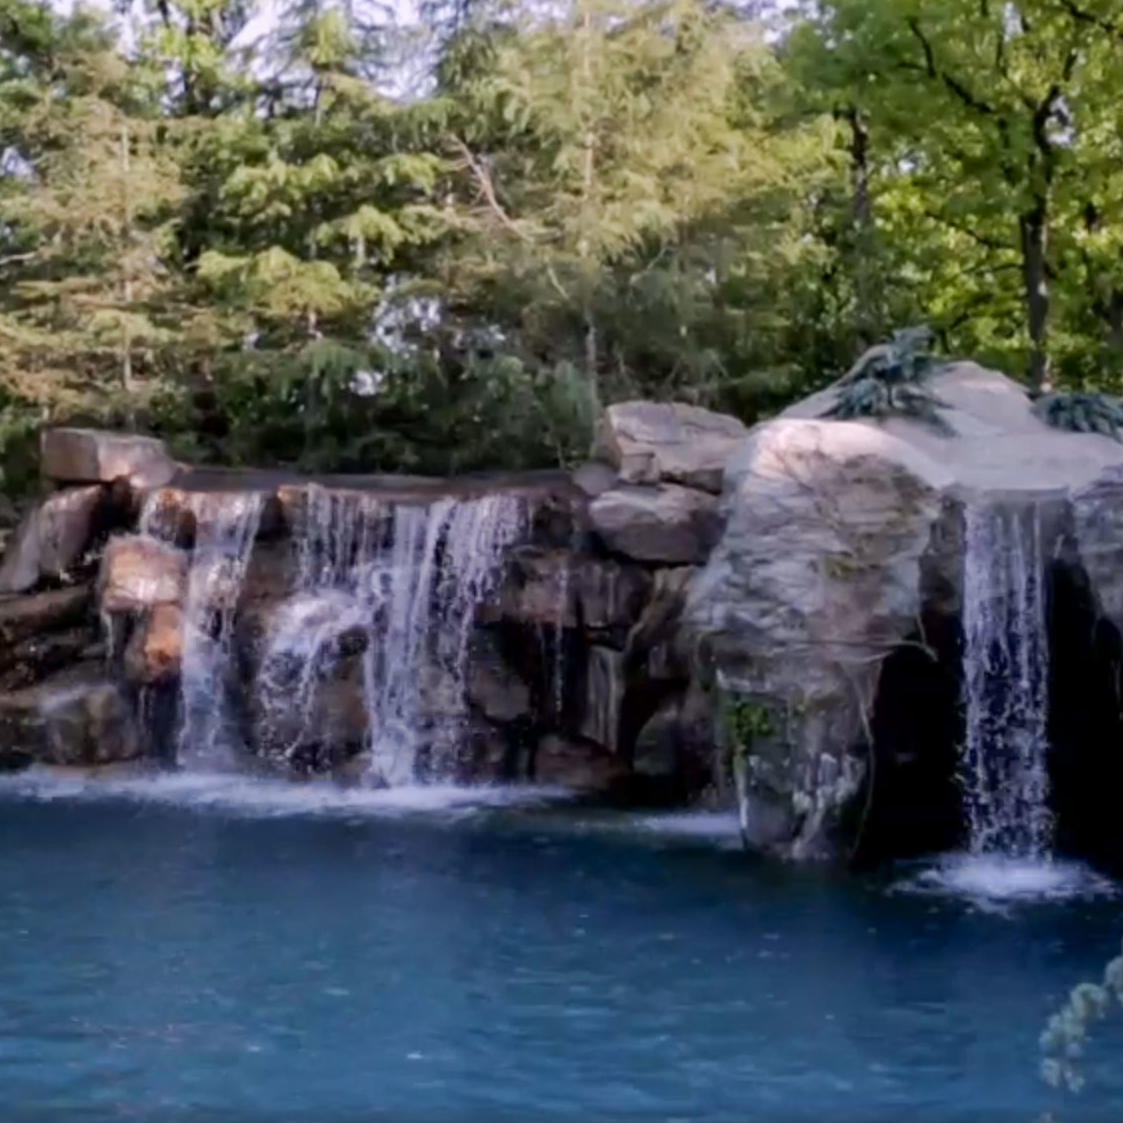 Waterfalls at your command the pool master animal planet for Pool show on animal planet